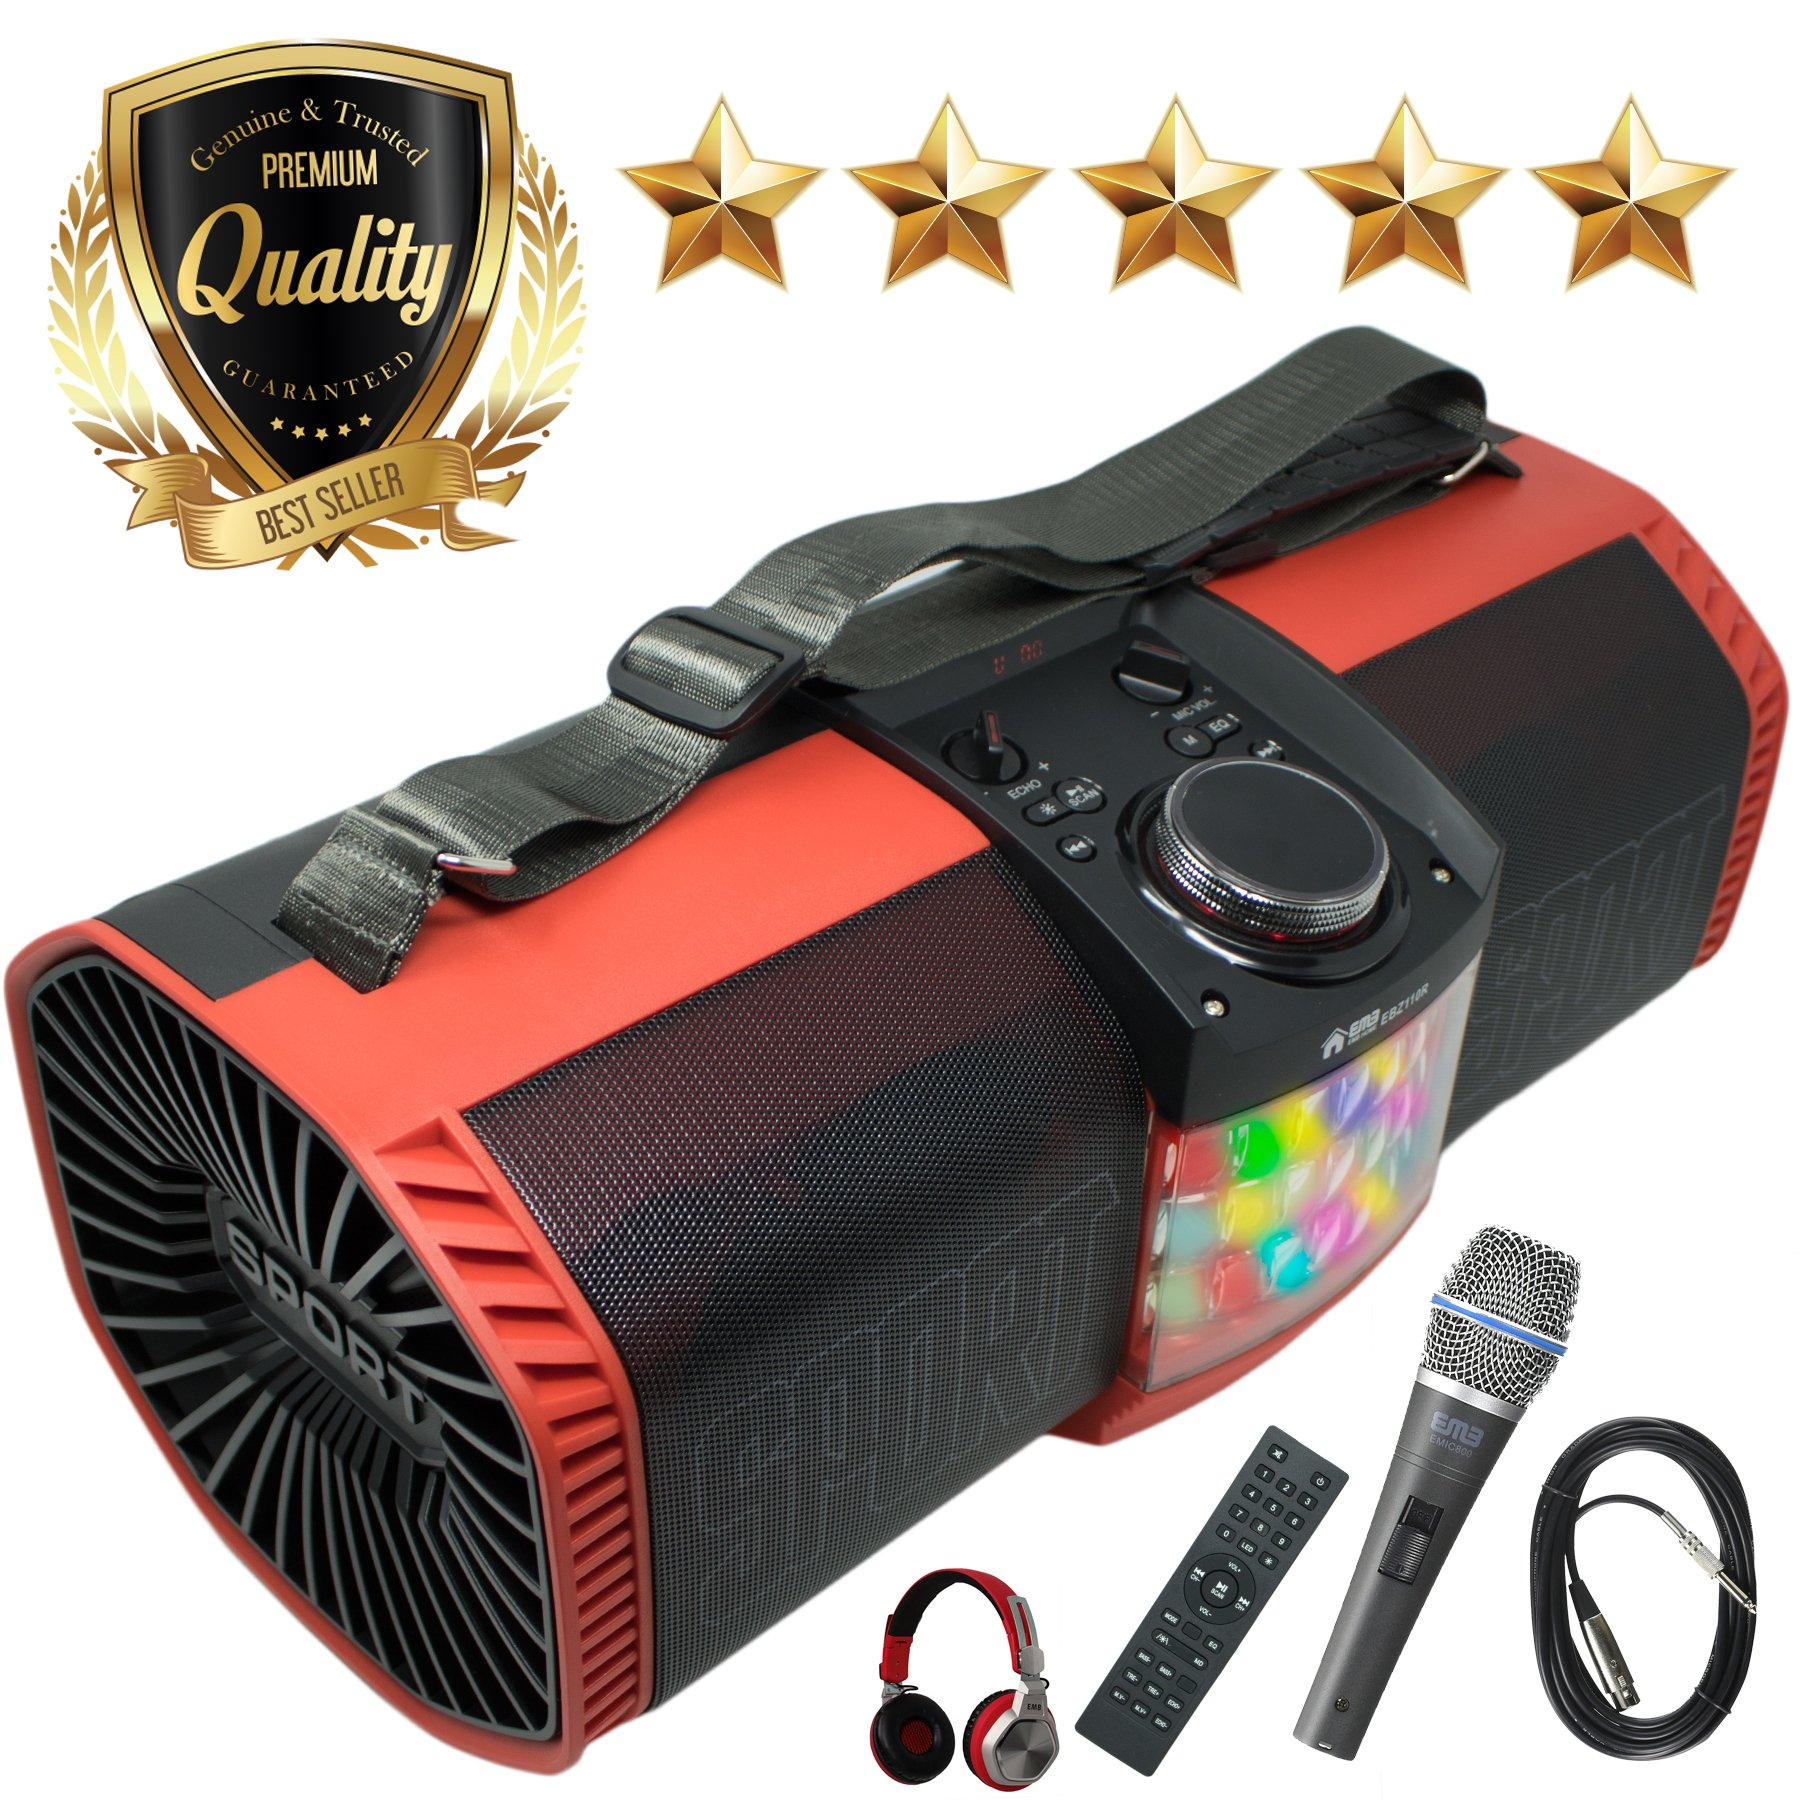 EMB Bluetooth Boombox Street Disco Stereo Speaker - 3600mAH Rechargeable Battery Portable Wireless 300 Watts Power FM Radio/MP3 Player w/Remote and Disco Light w/EMB Microphone & Headphone (Red) by EMB Professional